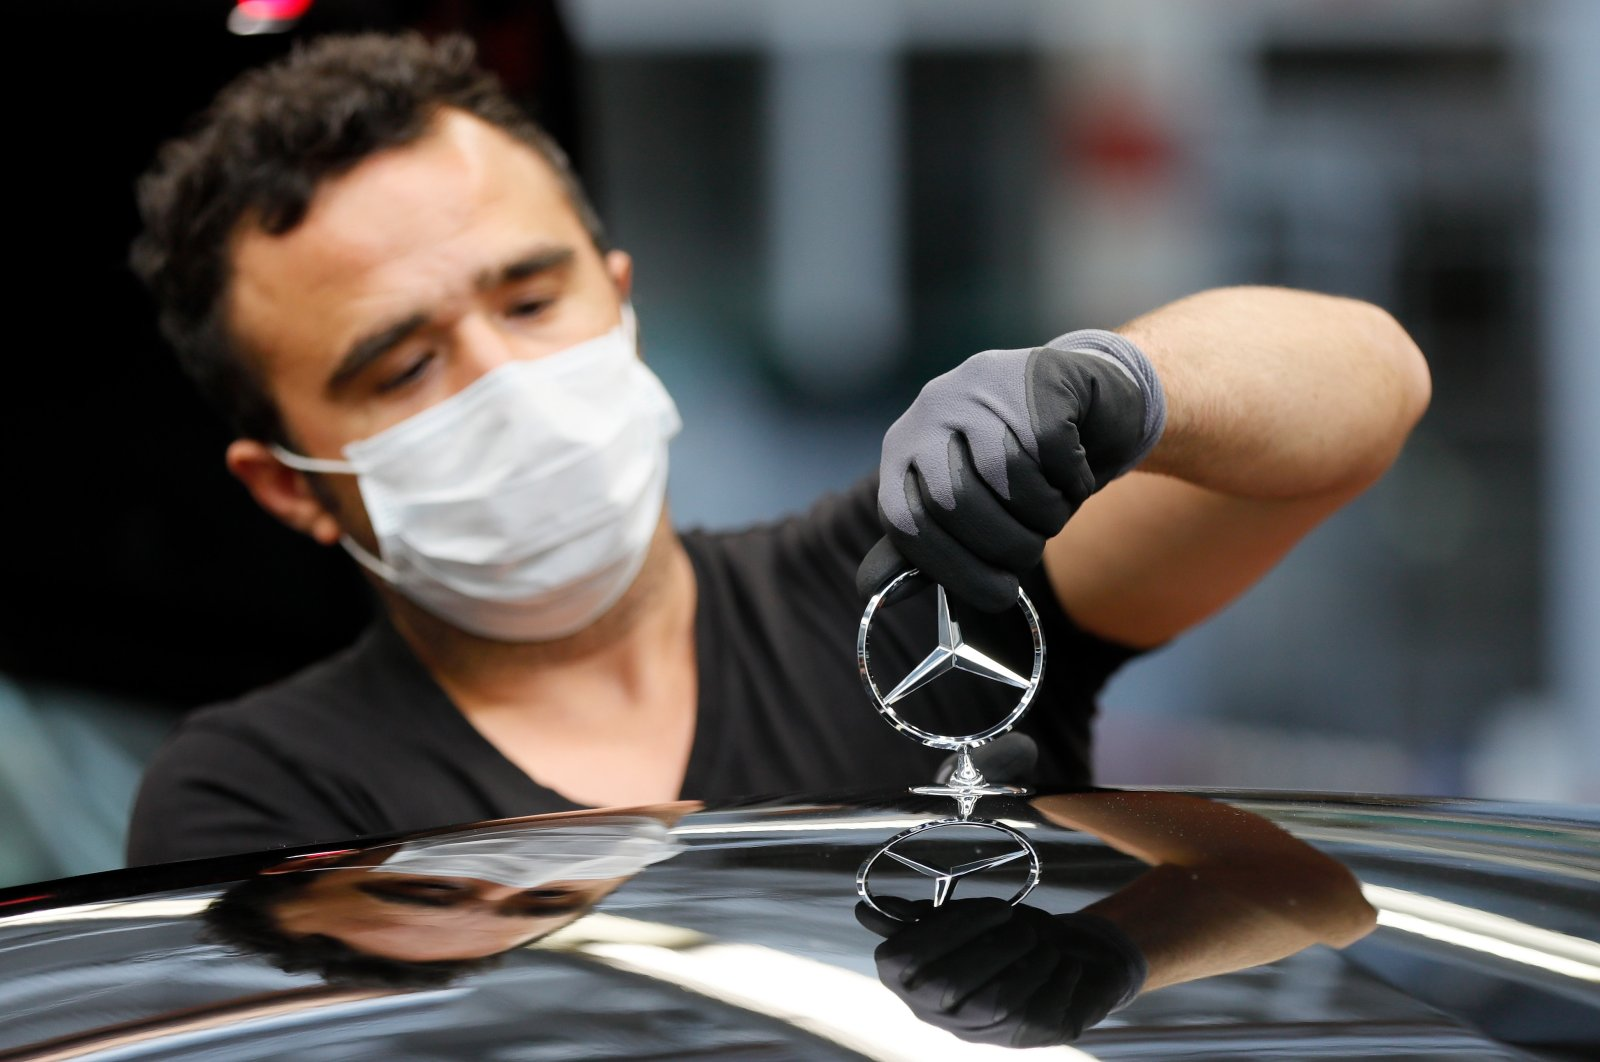 An employee prepares a star on a car at the production of 'S-Class' Mercedes Benz cars at an assembly line during the corona pandemic at the car manufacturer Daimler in Sindelfingen, Germany, April 30, 2020. (EPA Photo)